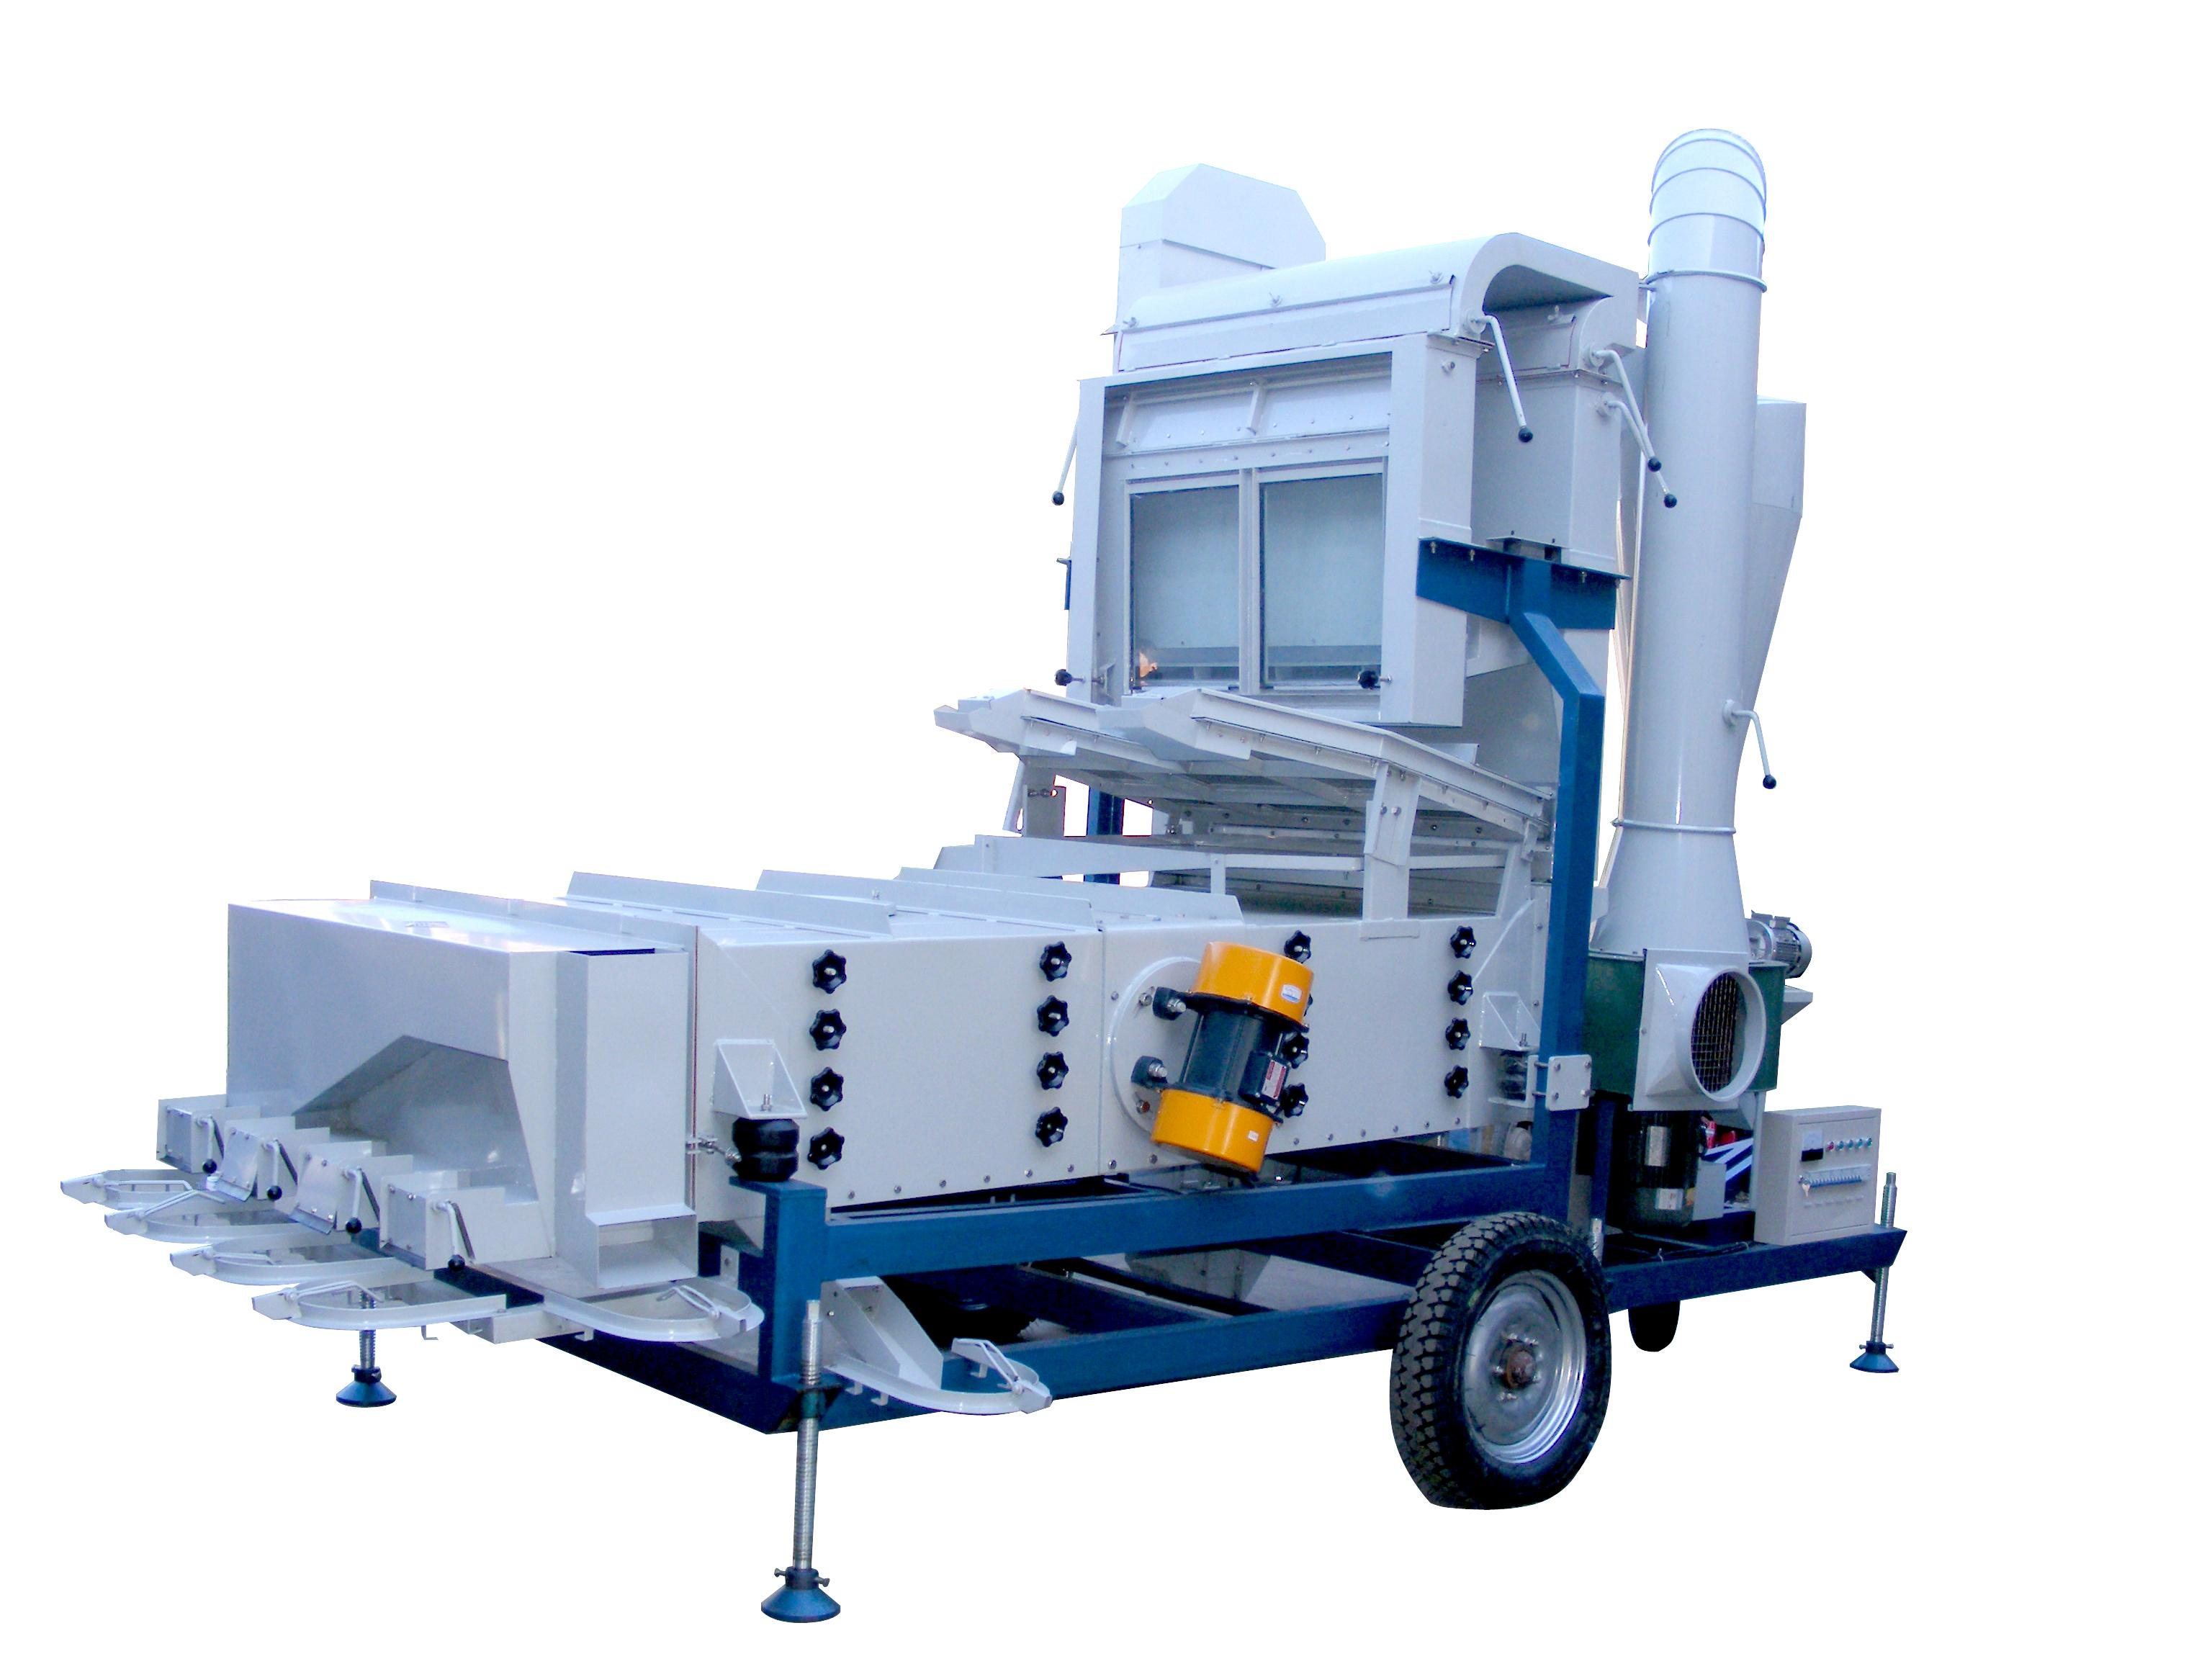 5XZC-7.5F seed cleaning machine (high configuration type)